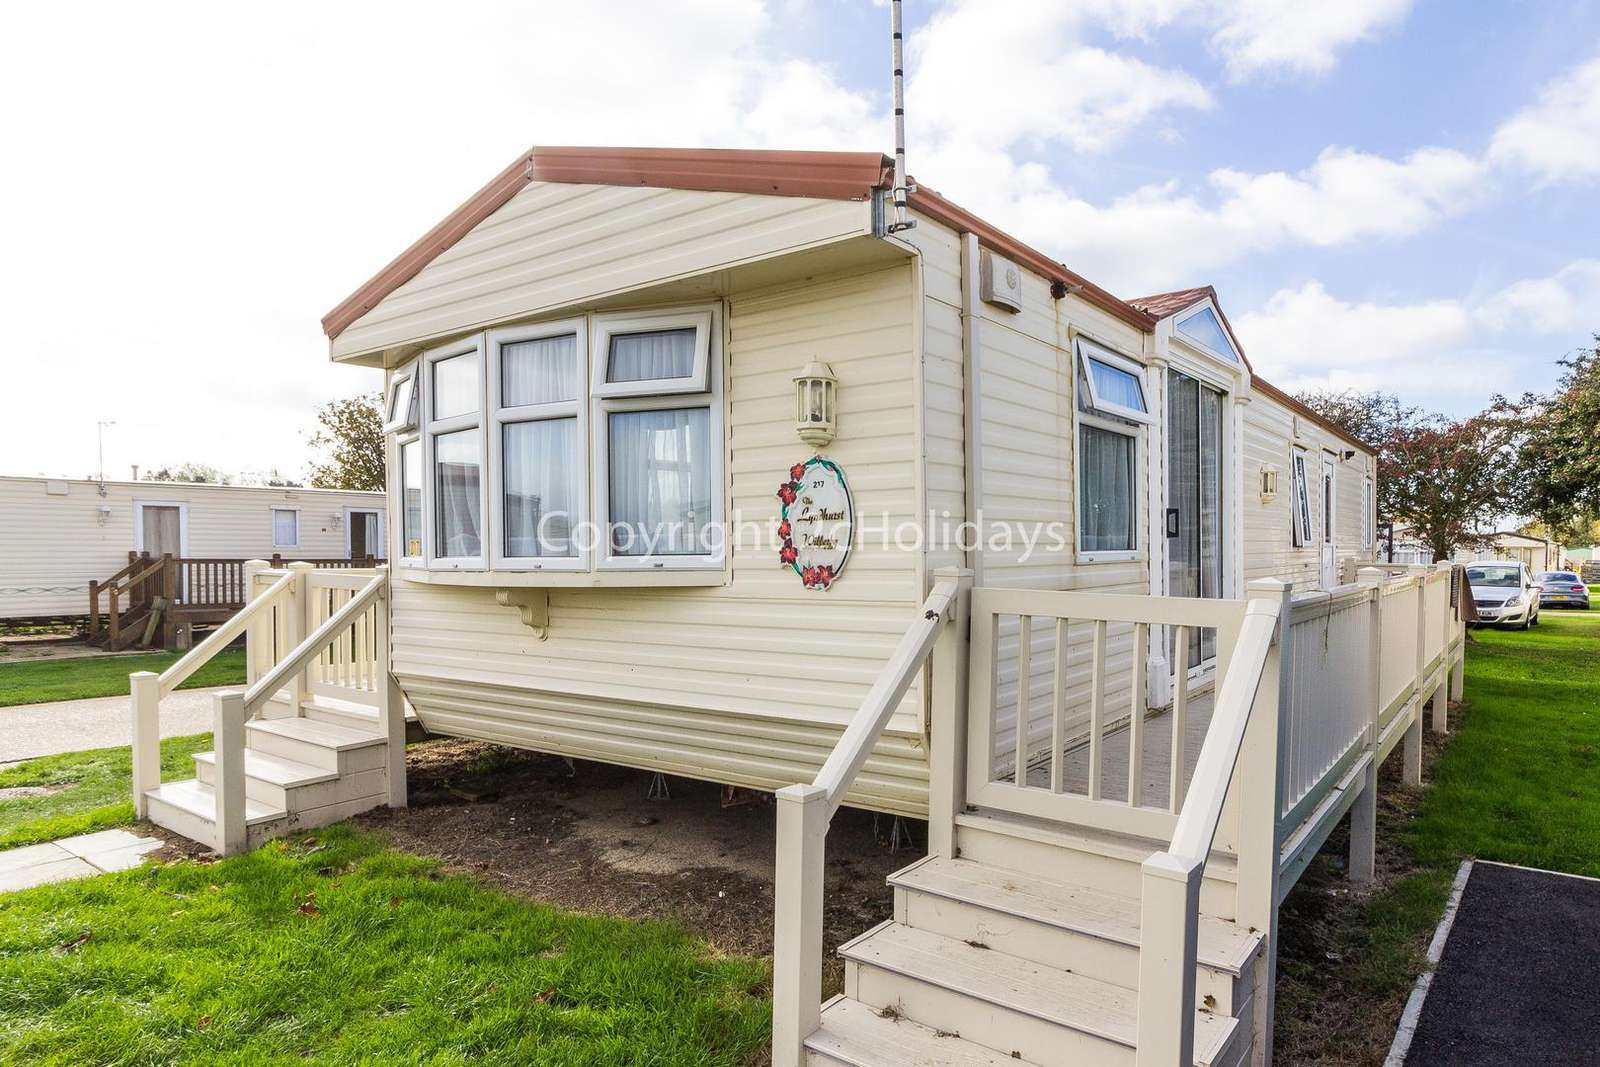 20217BS – Broadland, 2 bed, 6 berth caravan near amenities with. Ruby rated. - property